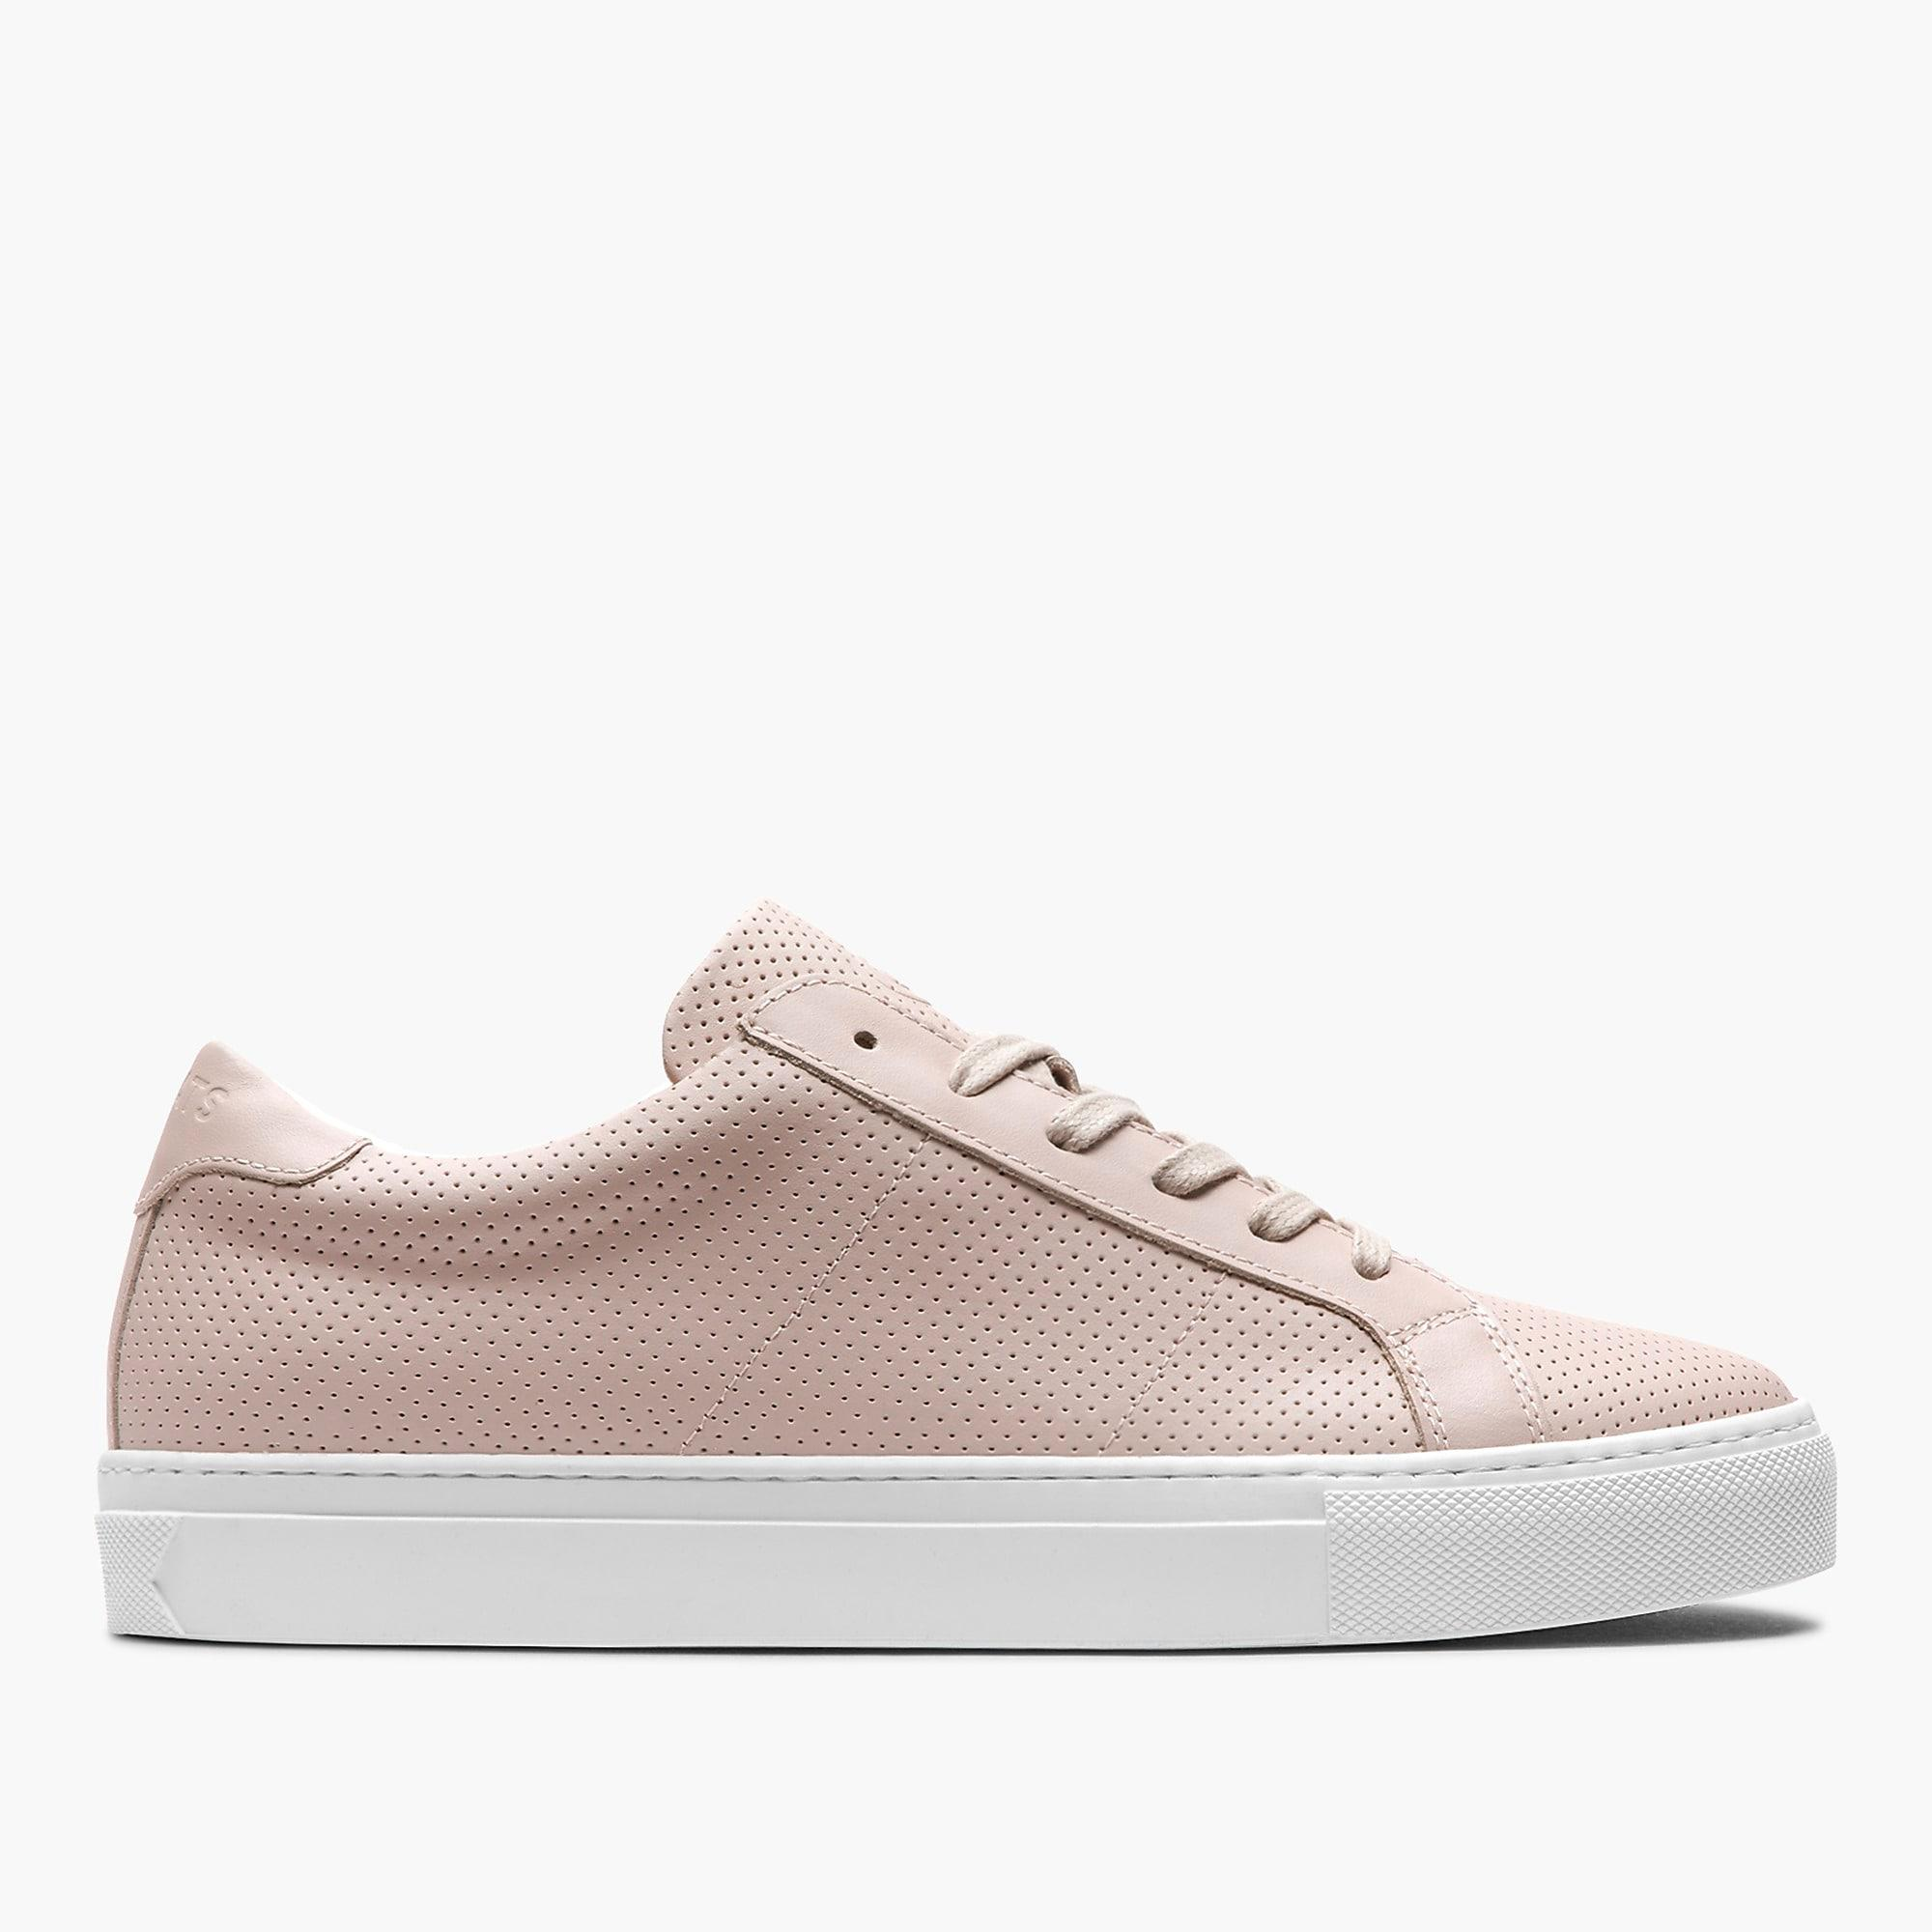 GREATS Leather Royale Perforated Sneakers in Pink